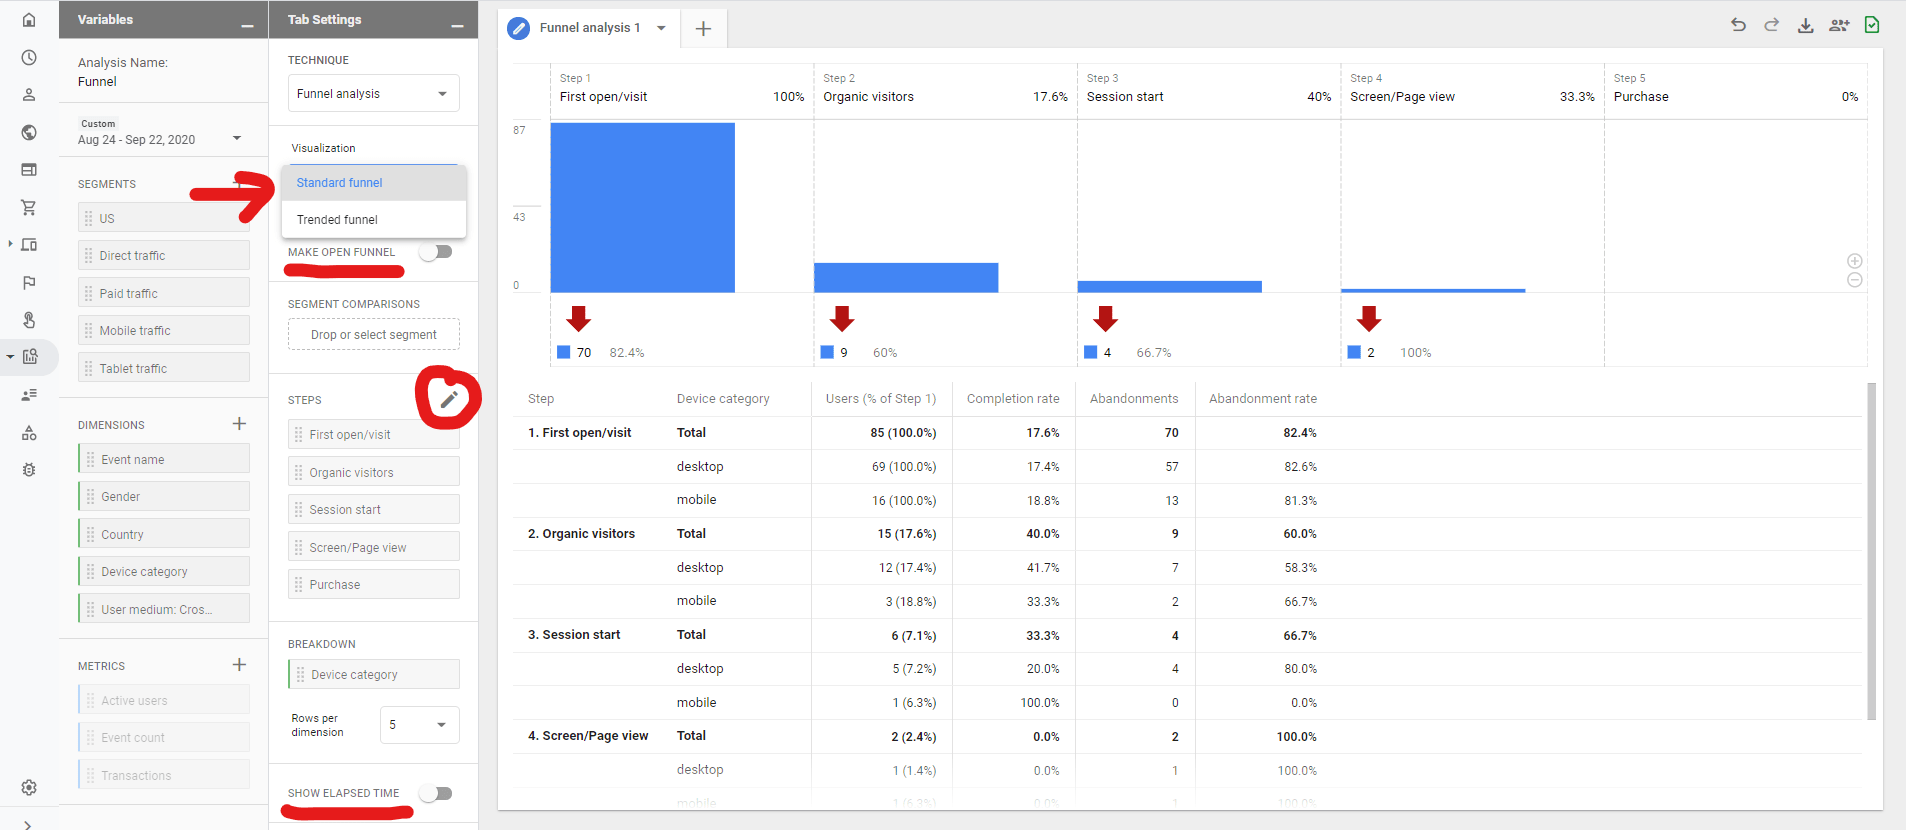 Google Analytics 4 Funnel Analysis Report